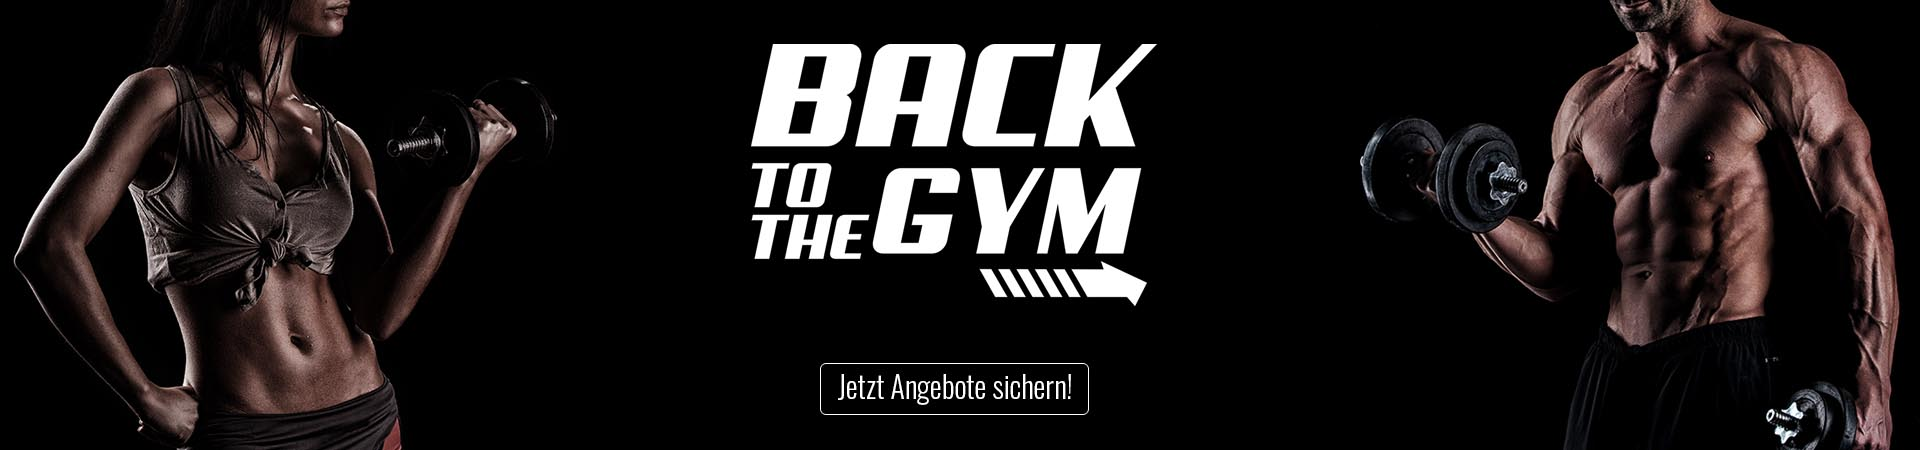 Back to the Gym